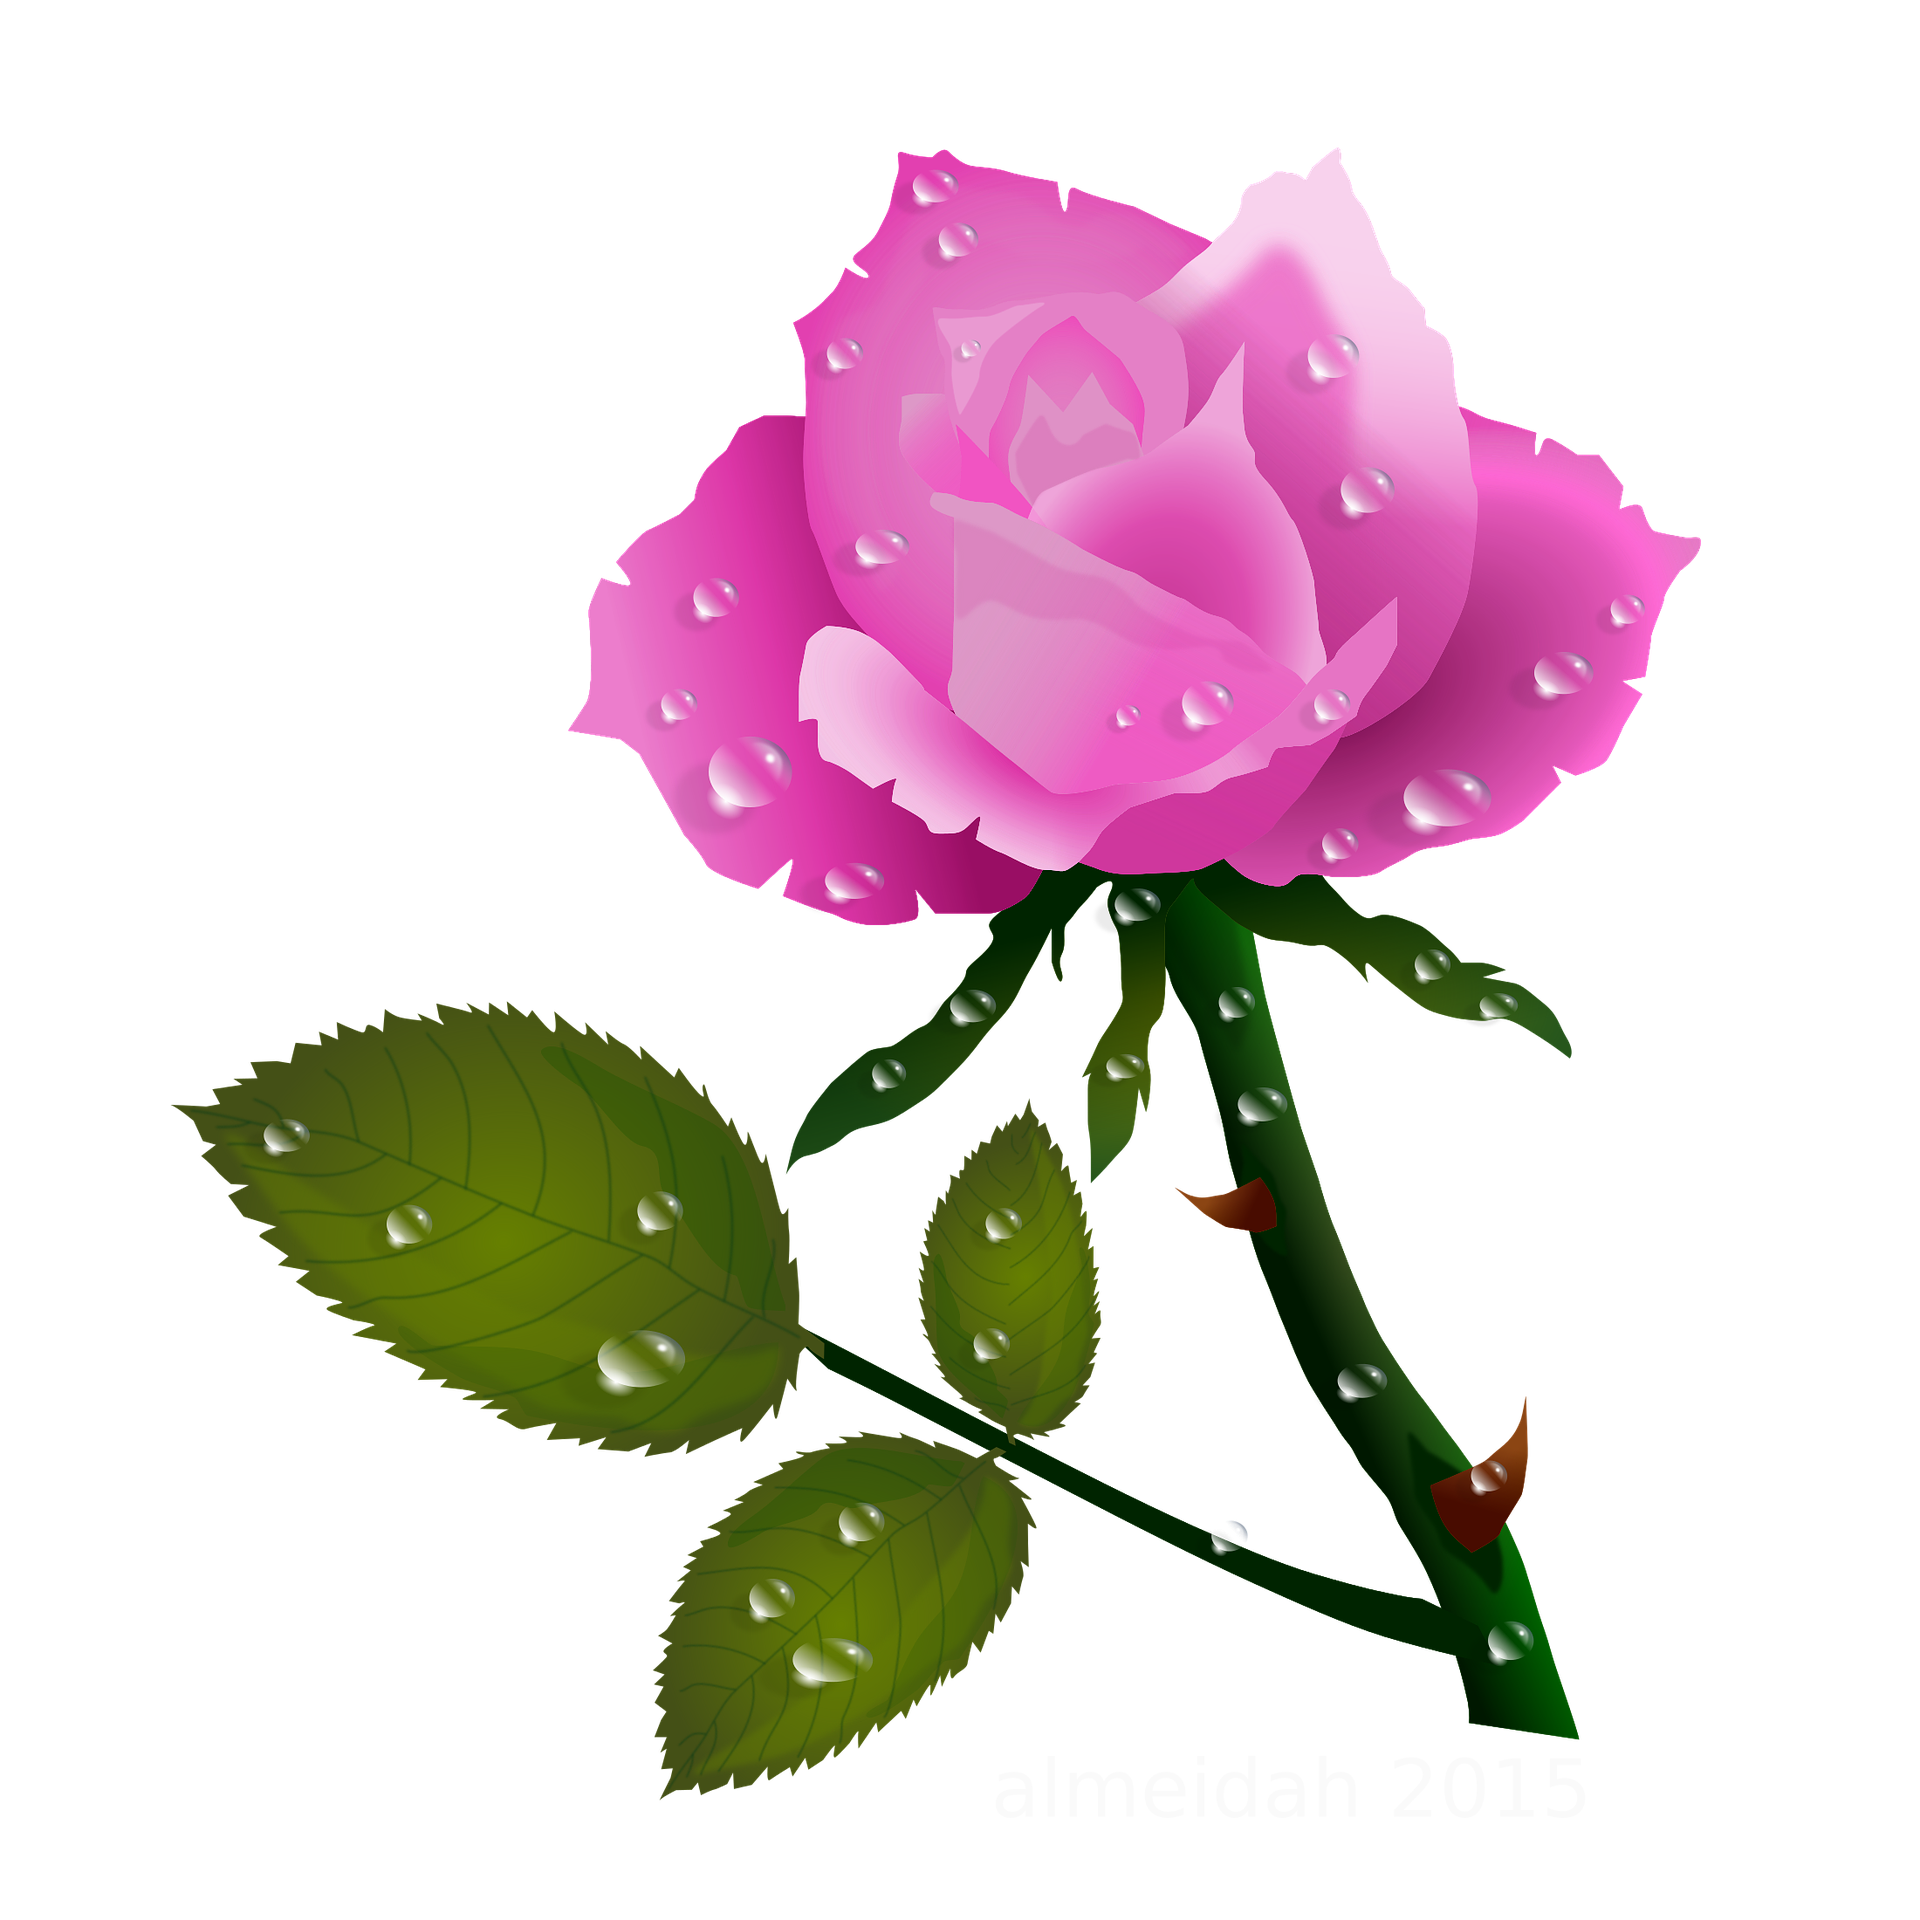 1920x1920 Pink Rose With Water Drops 1920x1920 Clip Art Everyday For Cards